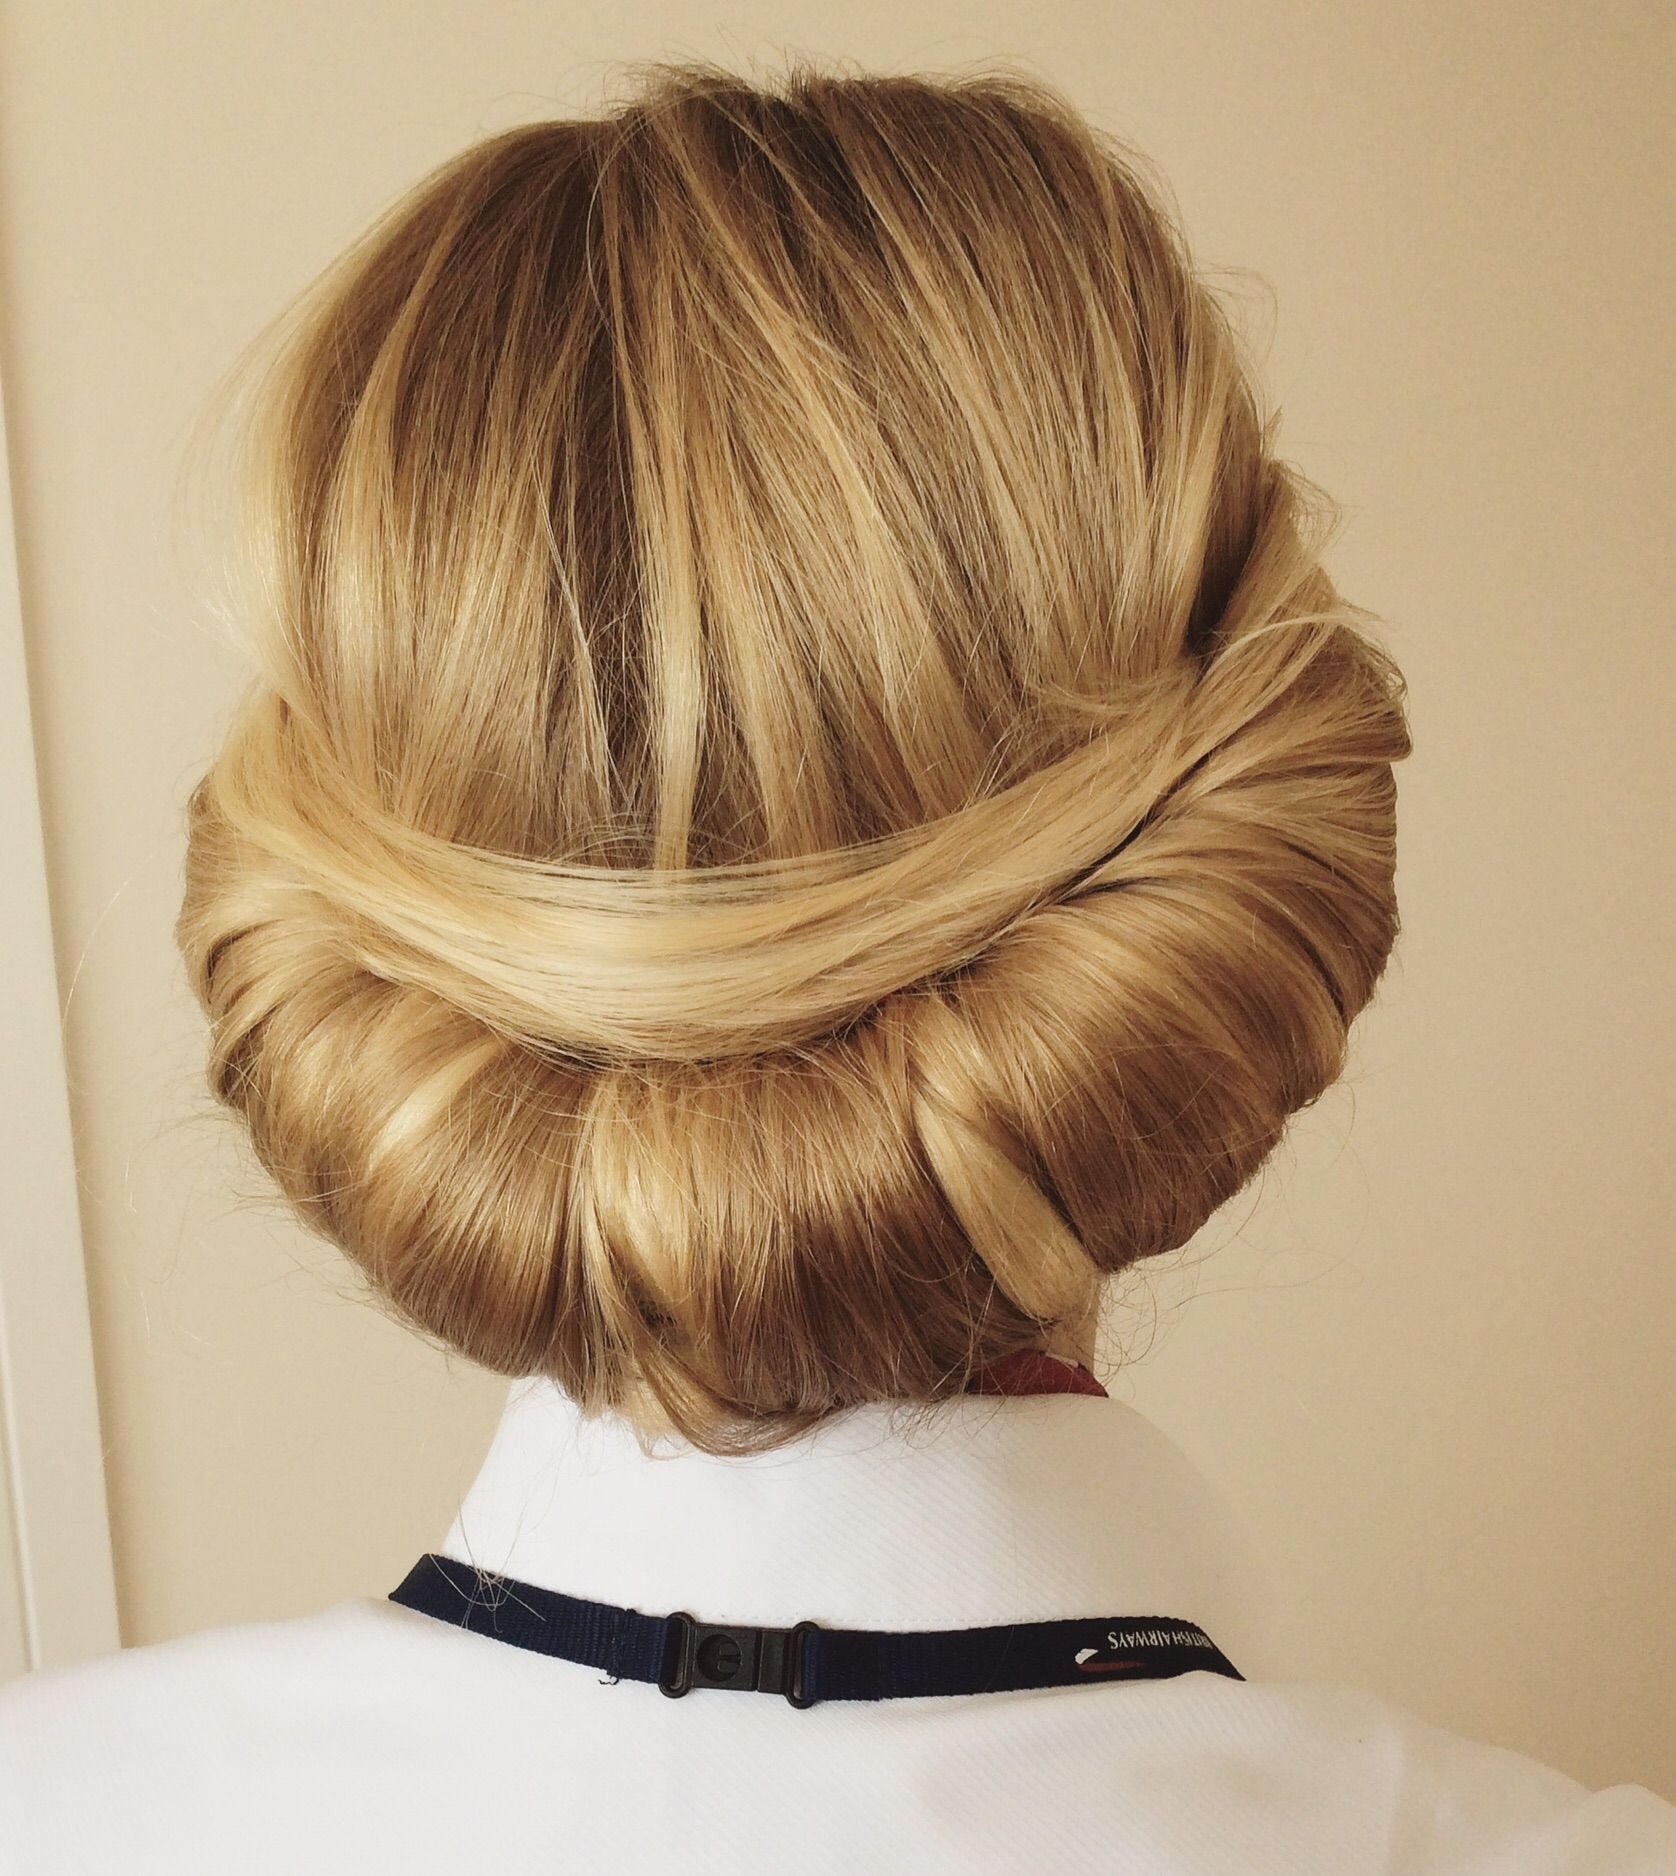 vintage roll for cabin crew hair | hair | pinterest | cabin crew